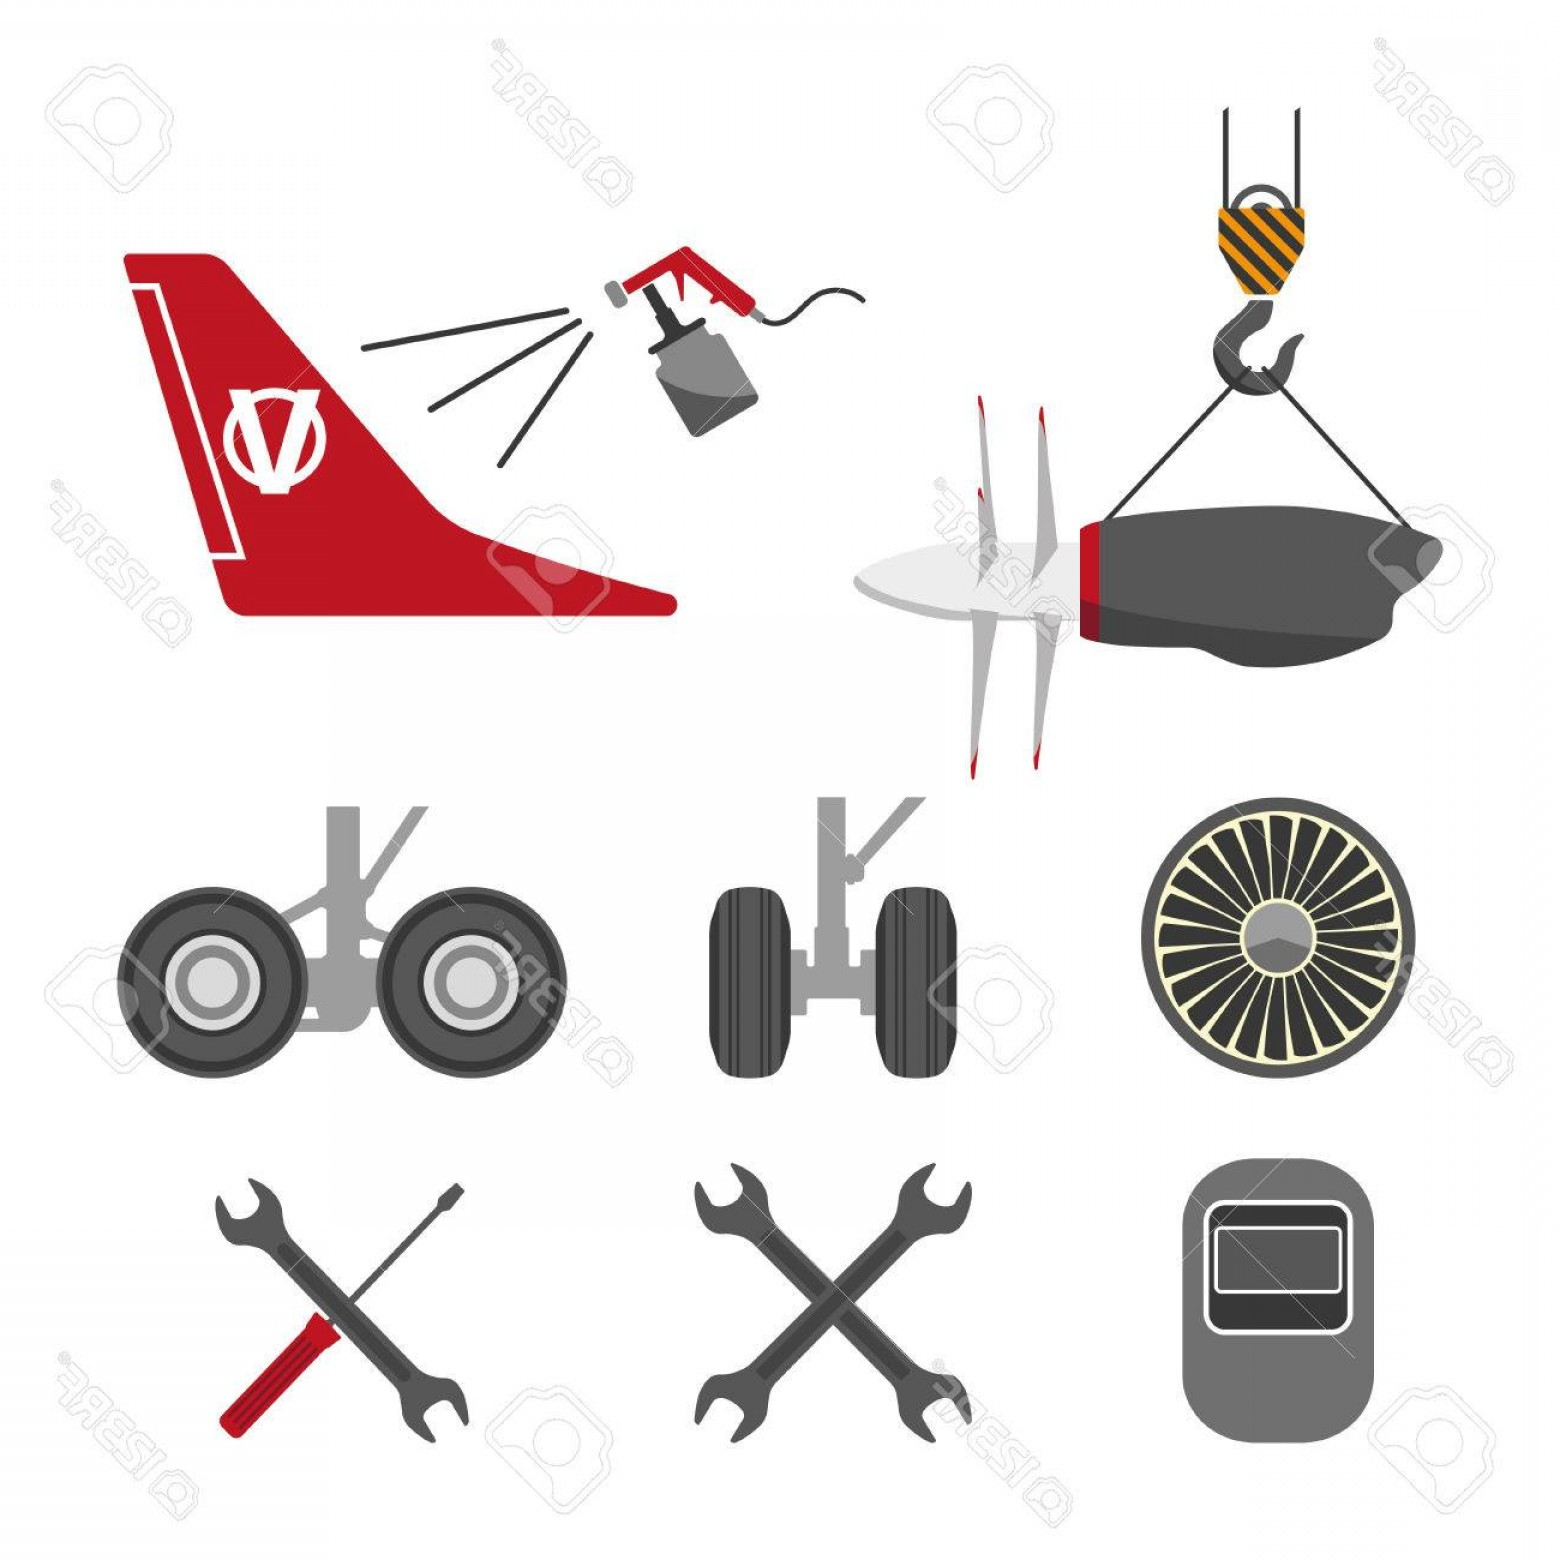 Model Planes Parts Vector: Photostock Vector Set Of Aircraft Parts On White Background Flat Vector Icons Set Aircraft Repair Vector Illustration